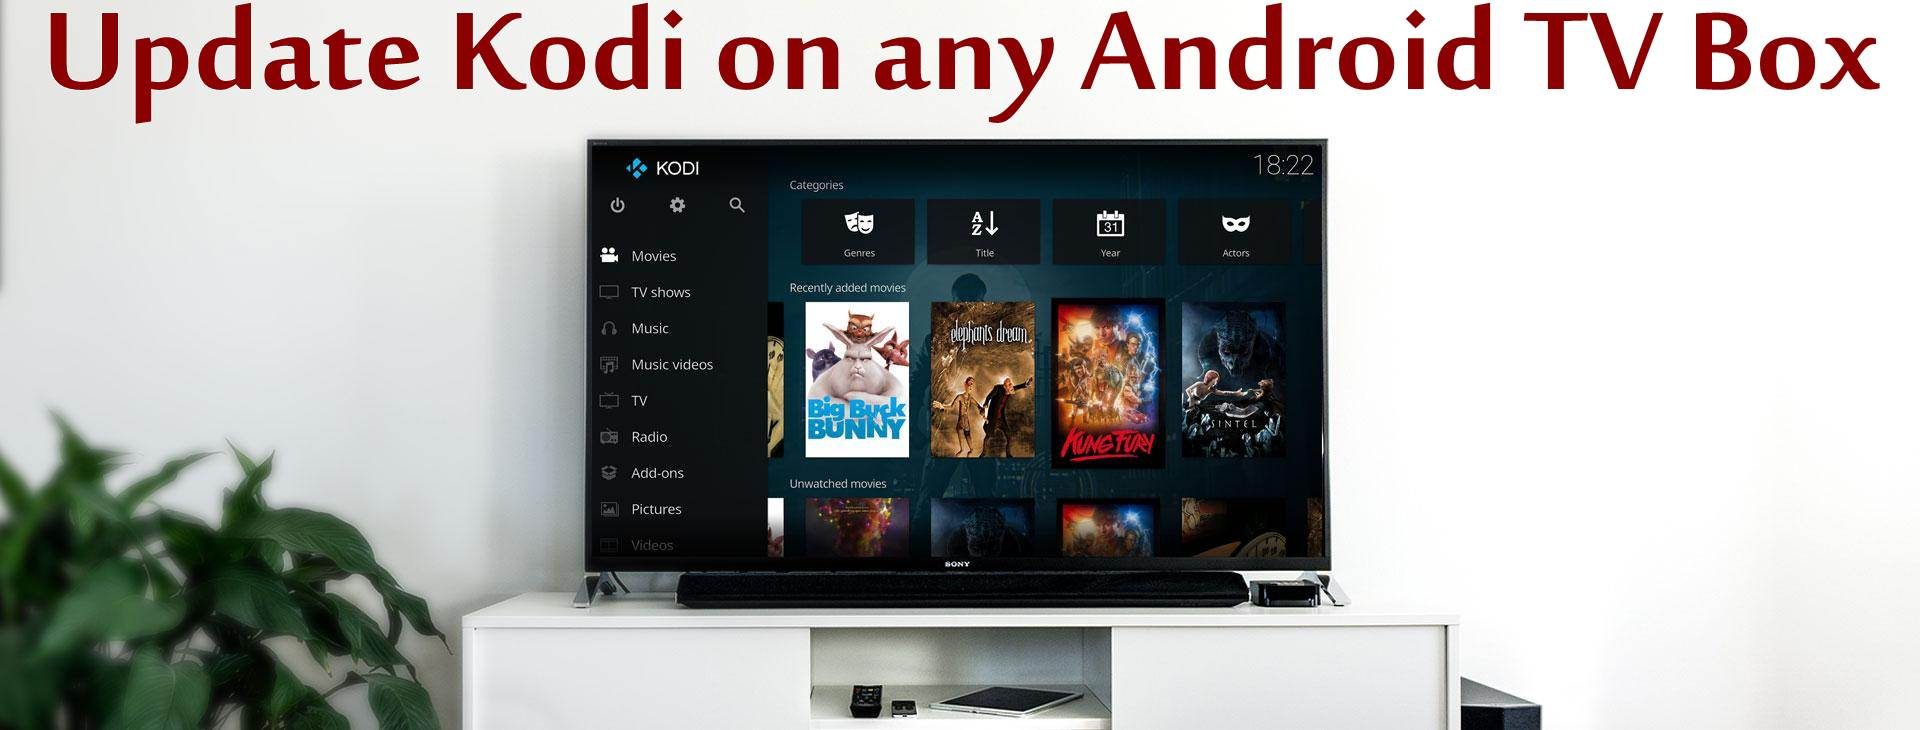 How to update Kodi on any Android TV Box